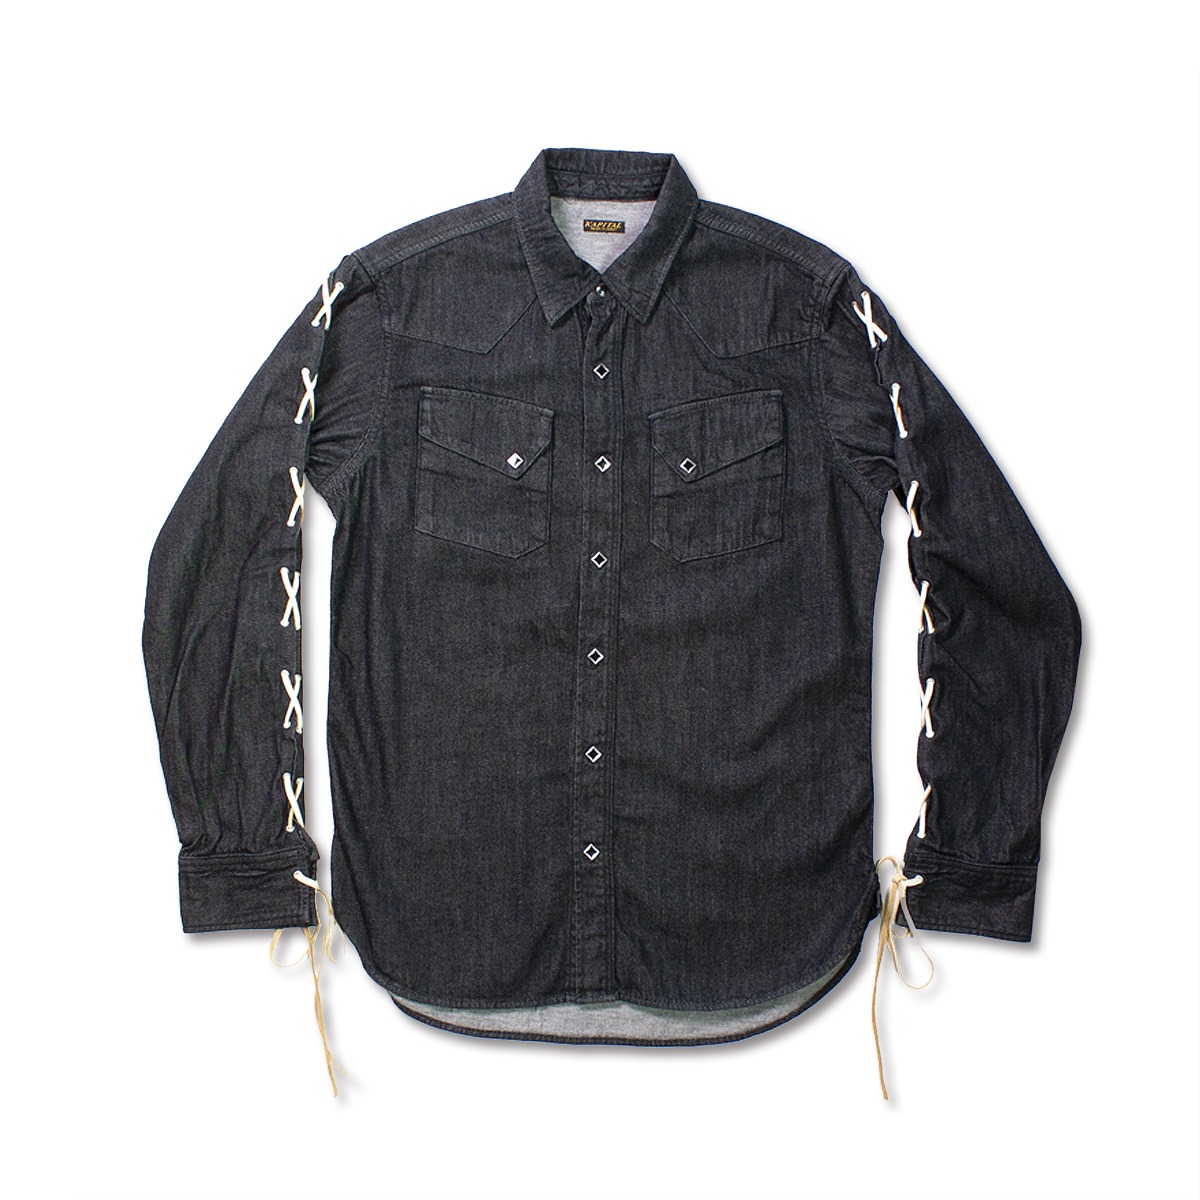 [KAPITAL] 8OZ BLACK DENIM LACE-UP WESTERN SHIRT M'S 'BLK'